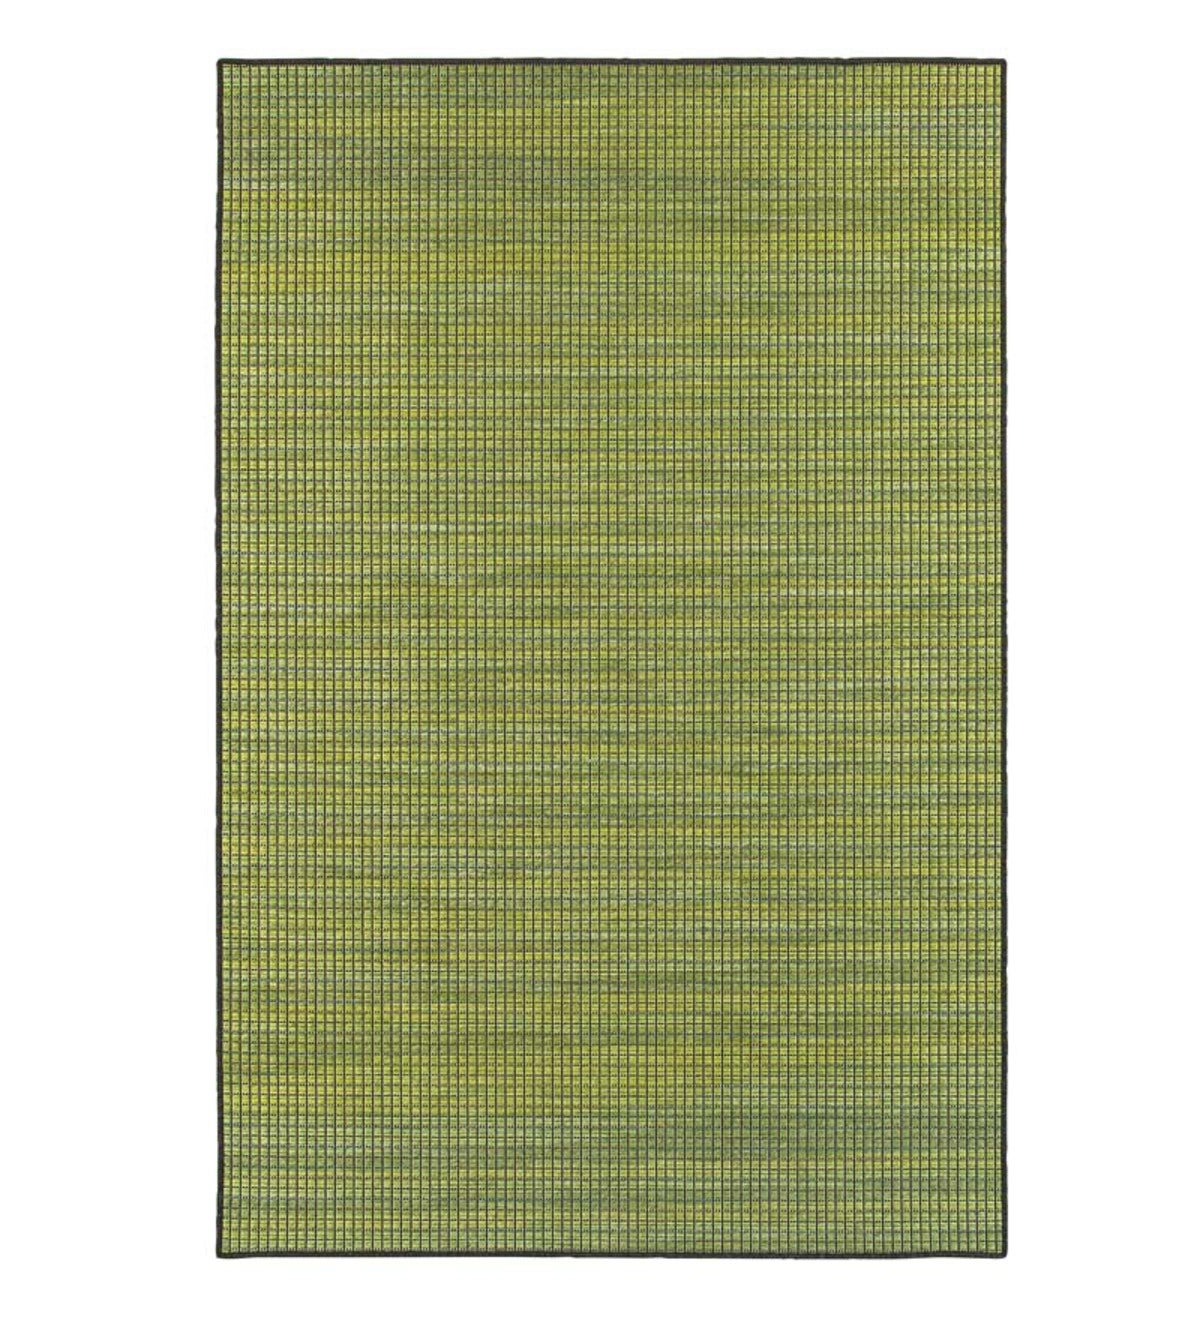 "Elements Textured Indoor/Outdoor Runner, 2'3""x 7'6"" - Green/Tan"